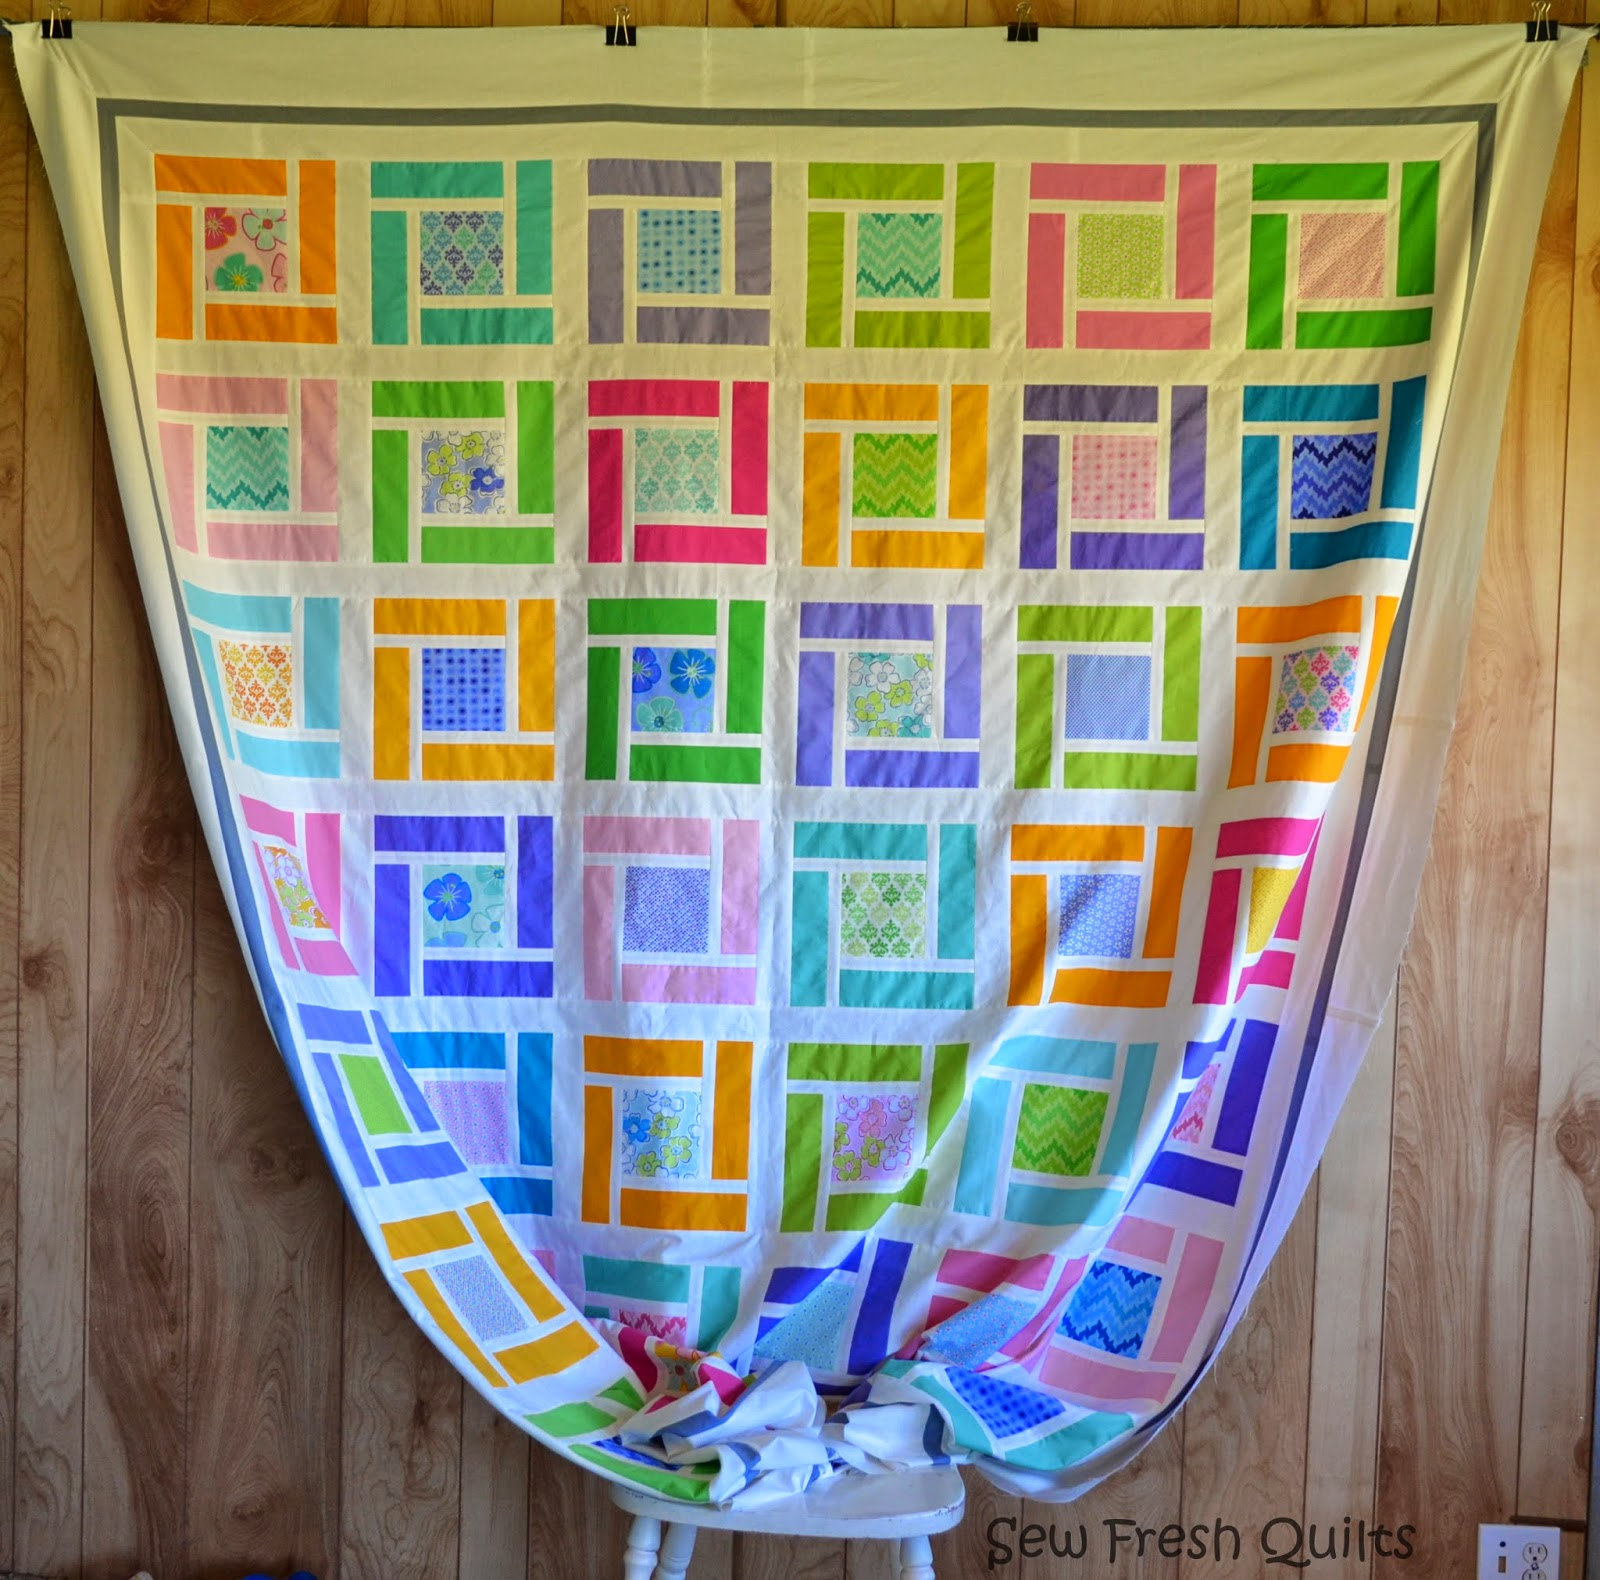 http://sewfreshquilts.blogspot.ca/2014/07/giggles-up-top.html